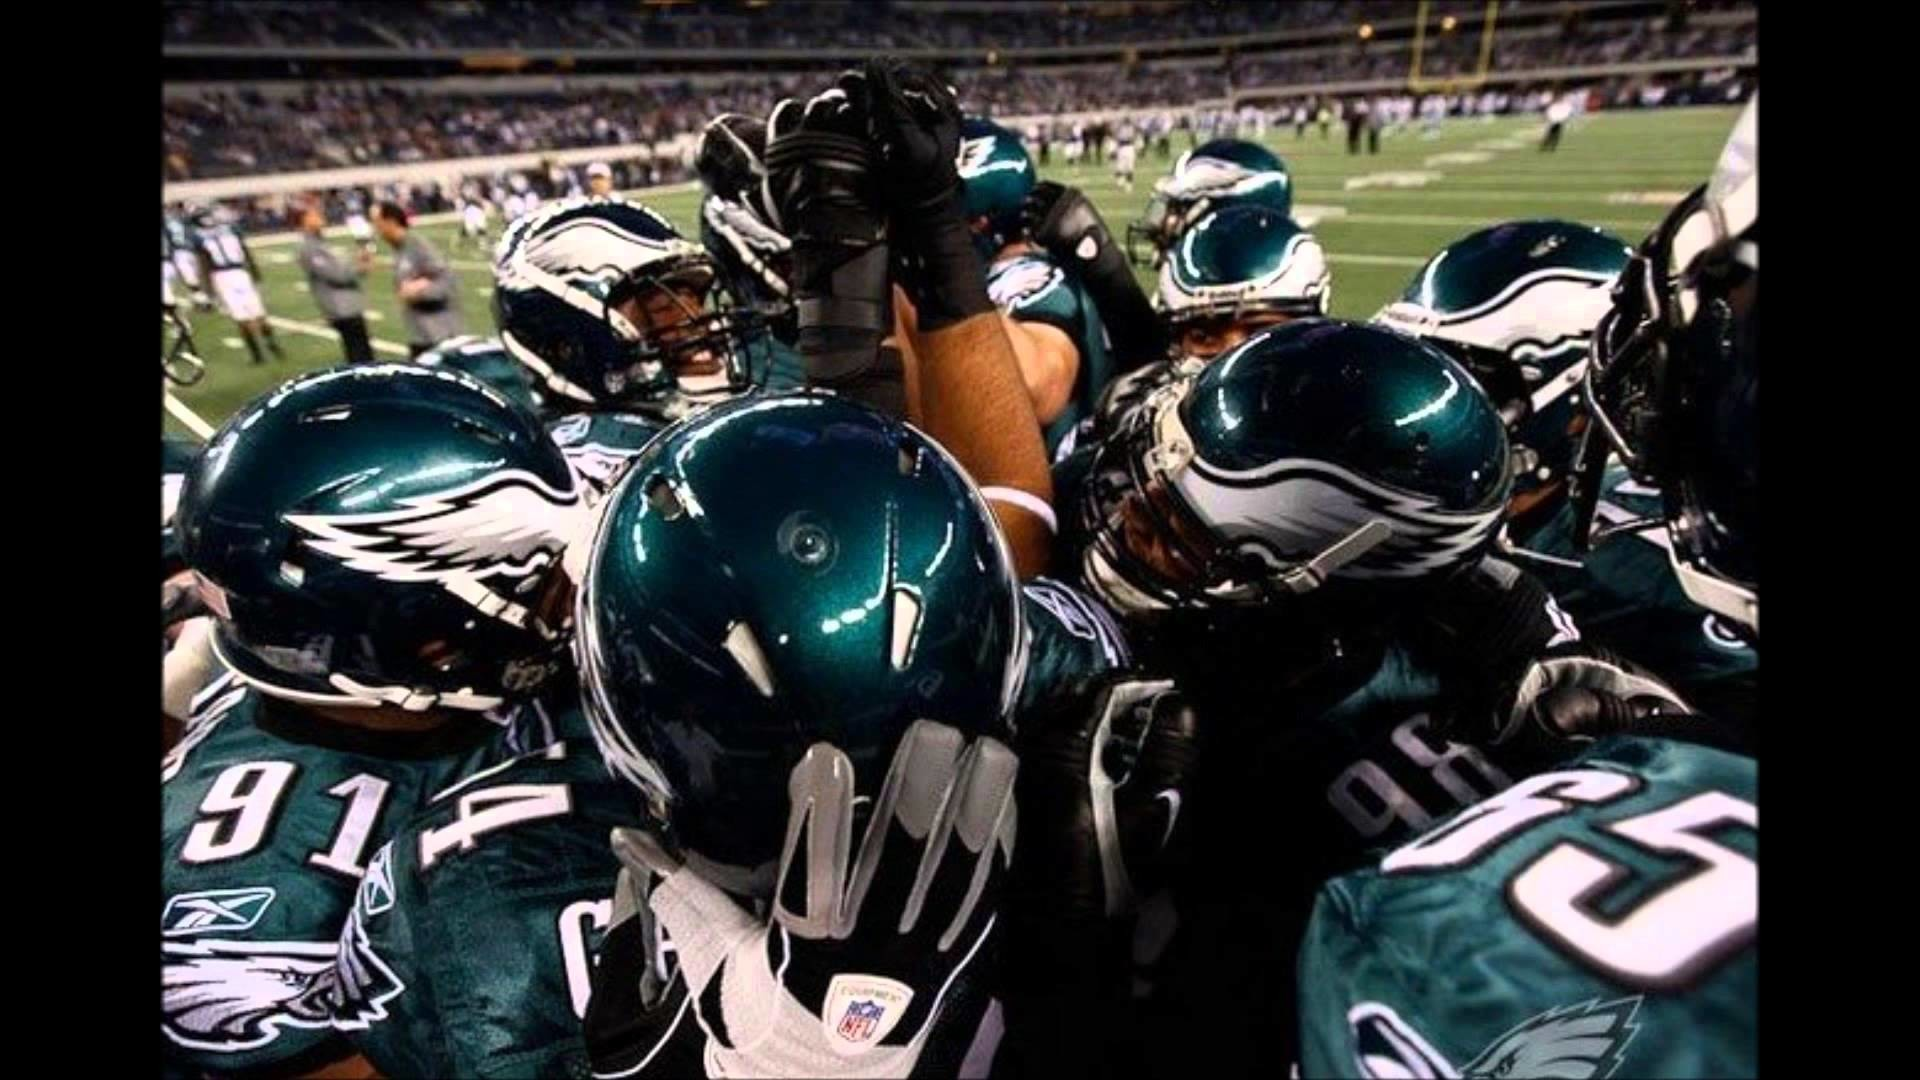 45 Nfl Football Players Wallpaper On Wallpapersafari: Philadelphia Eagles HD Wallpaper (76+ Images